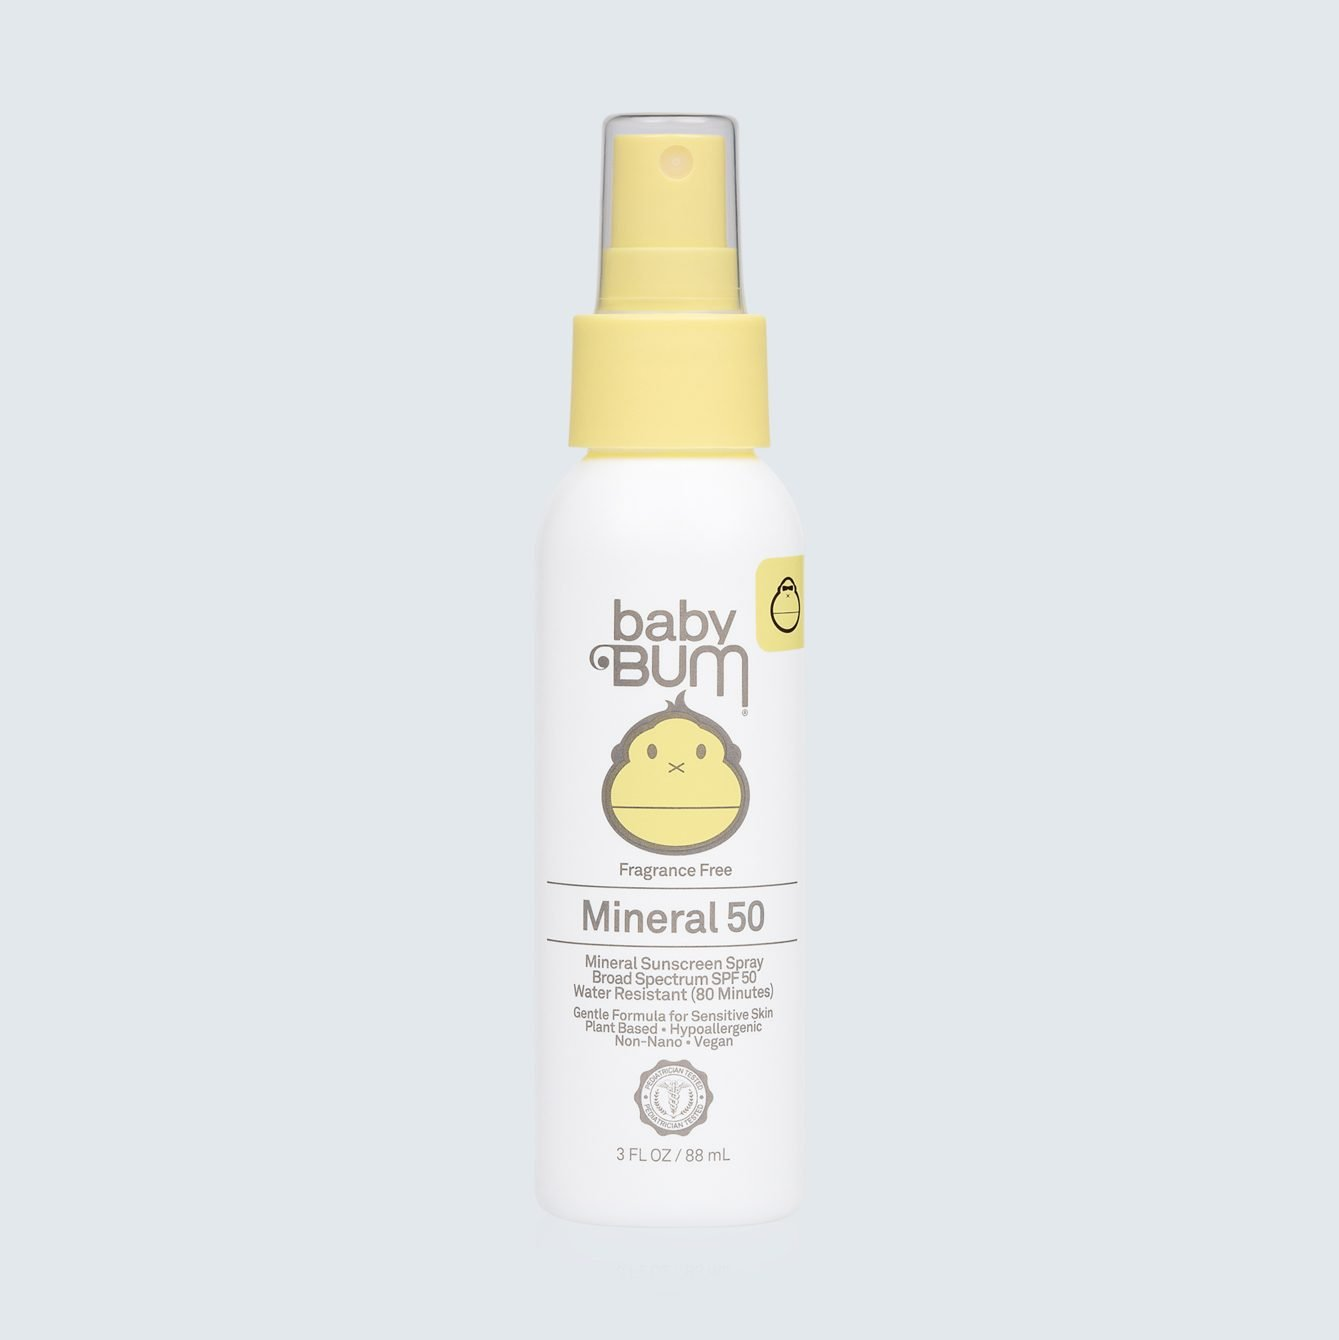 Baby Bum Mineral SPF 50 Sunscreen Spray-Fragrance Free.